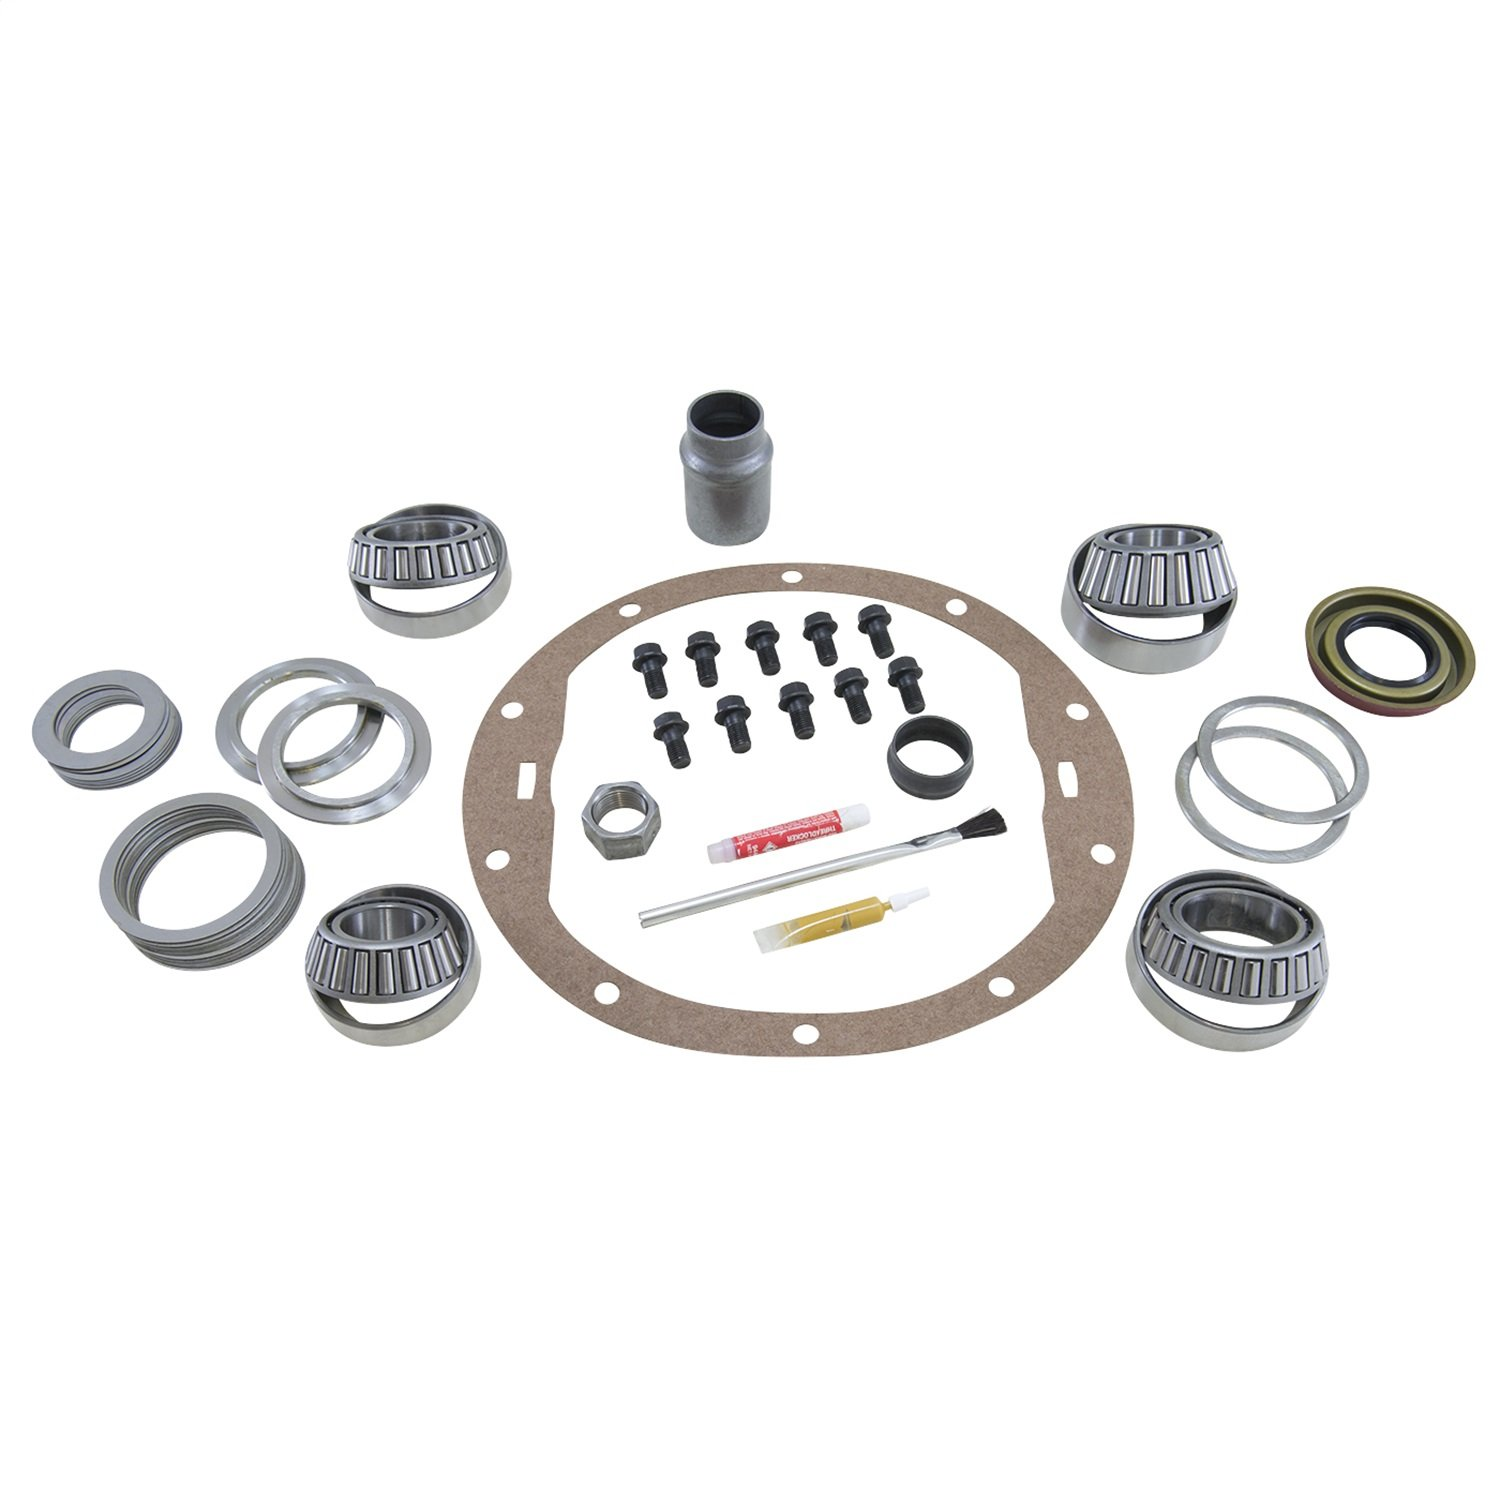 USA Standard Gear (ZK GM8.2) Master Overhaul Kit for GM 8.2'' 10-Bolt Differential